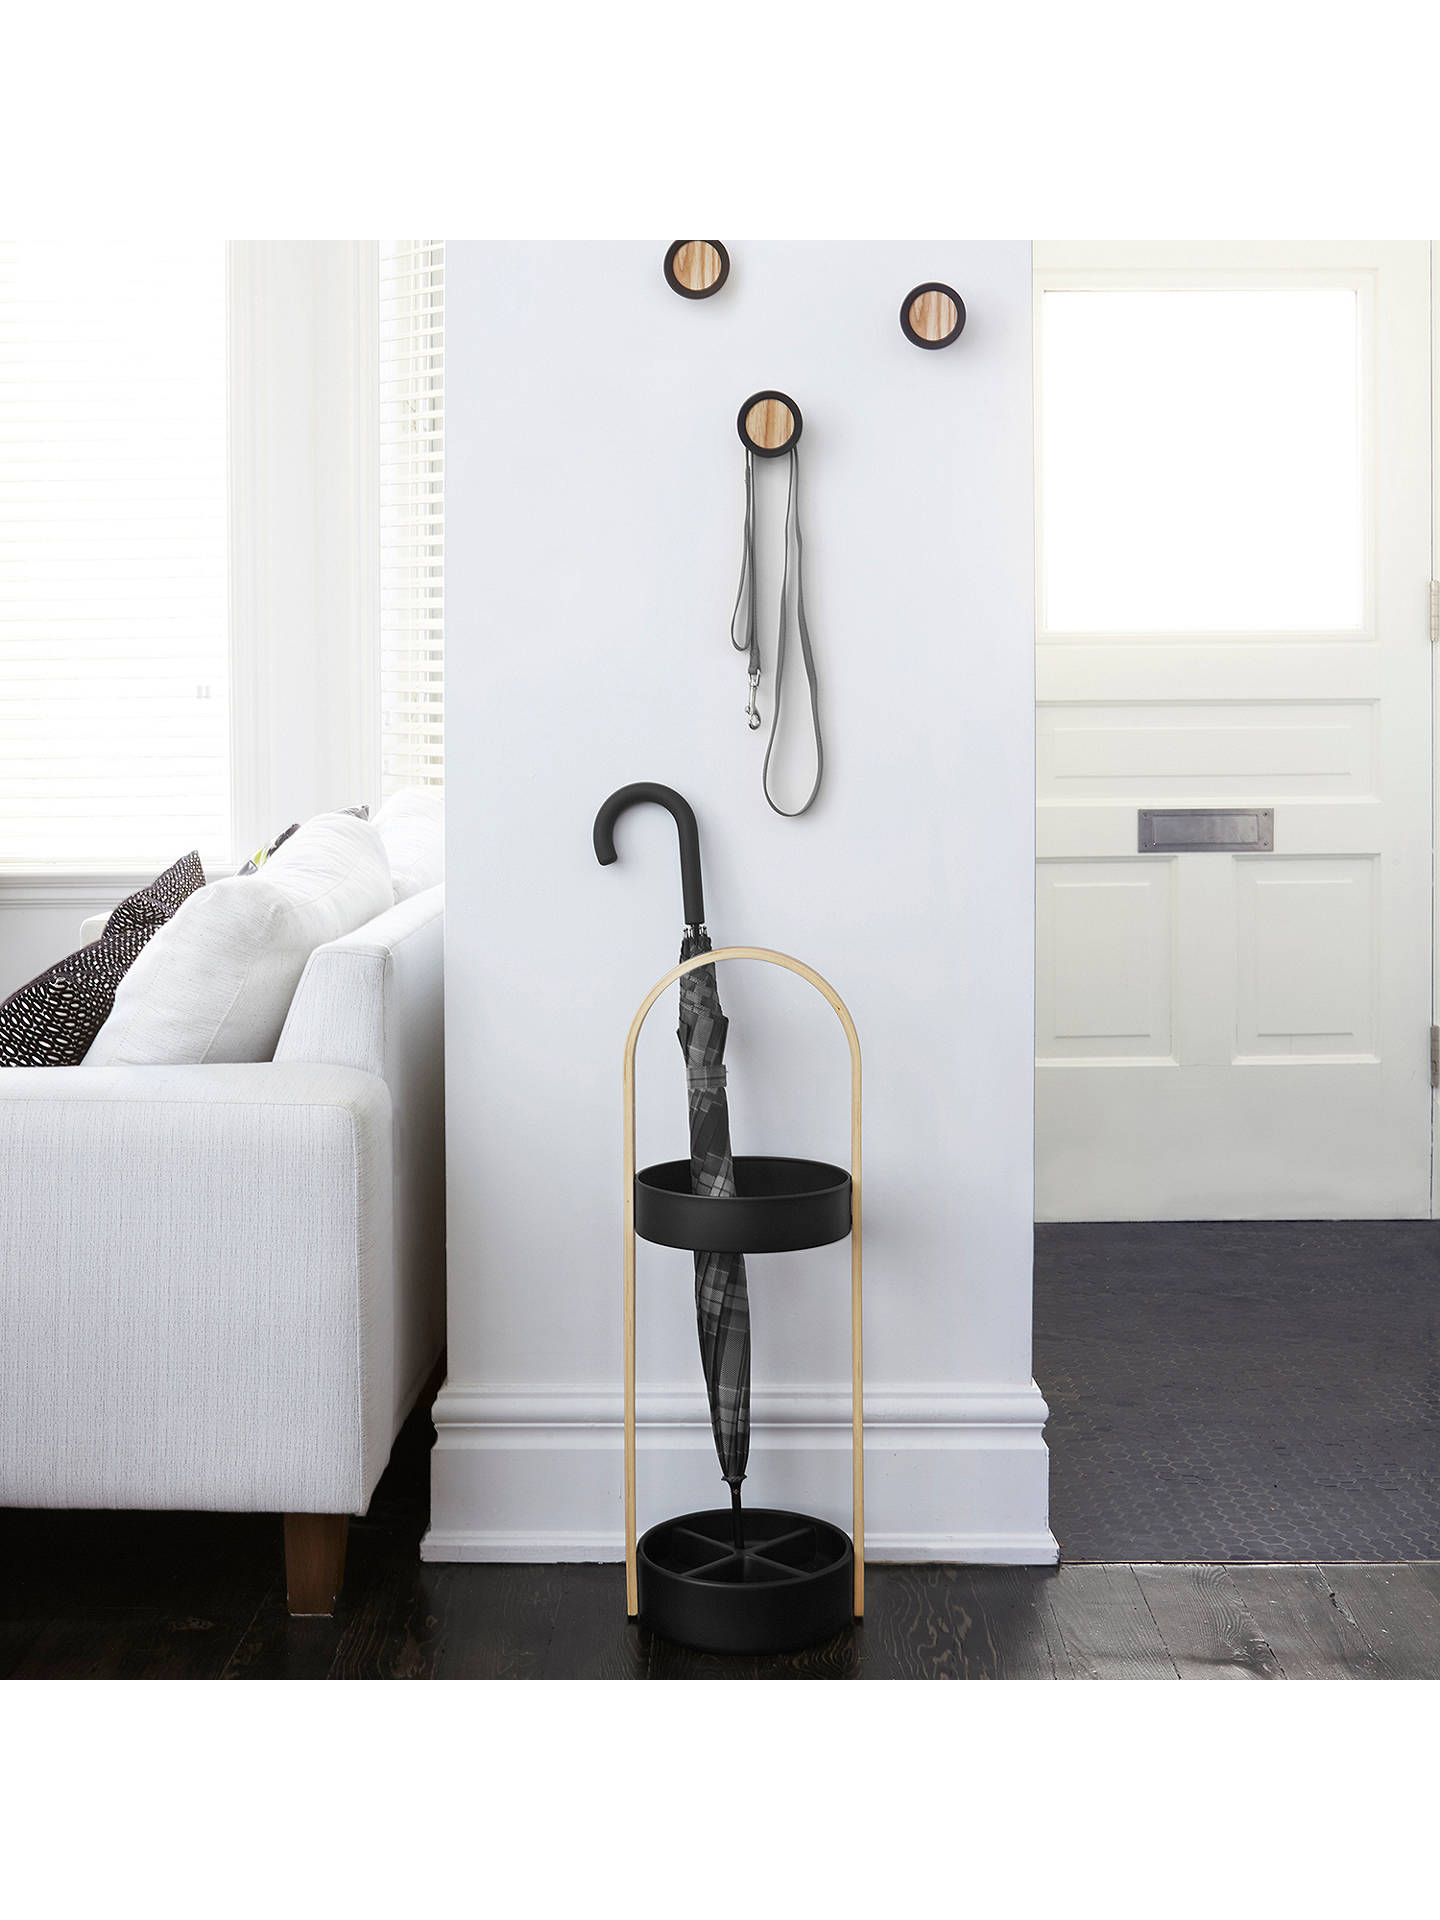 Buy Umbra Hub Hooks, Set of 3, Black Online at johnlewis.com